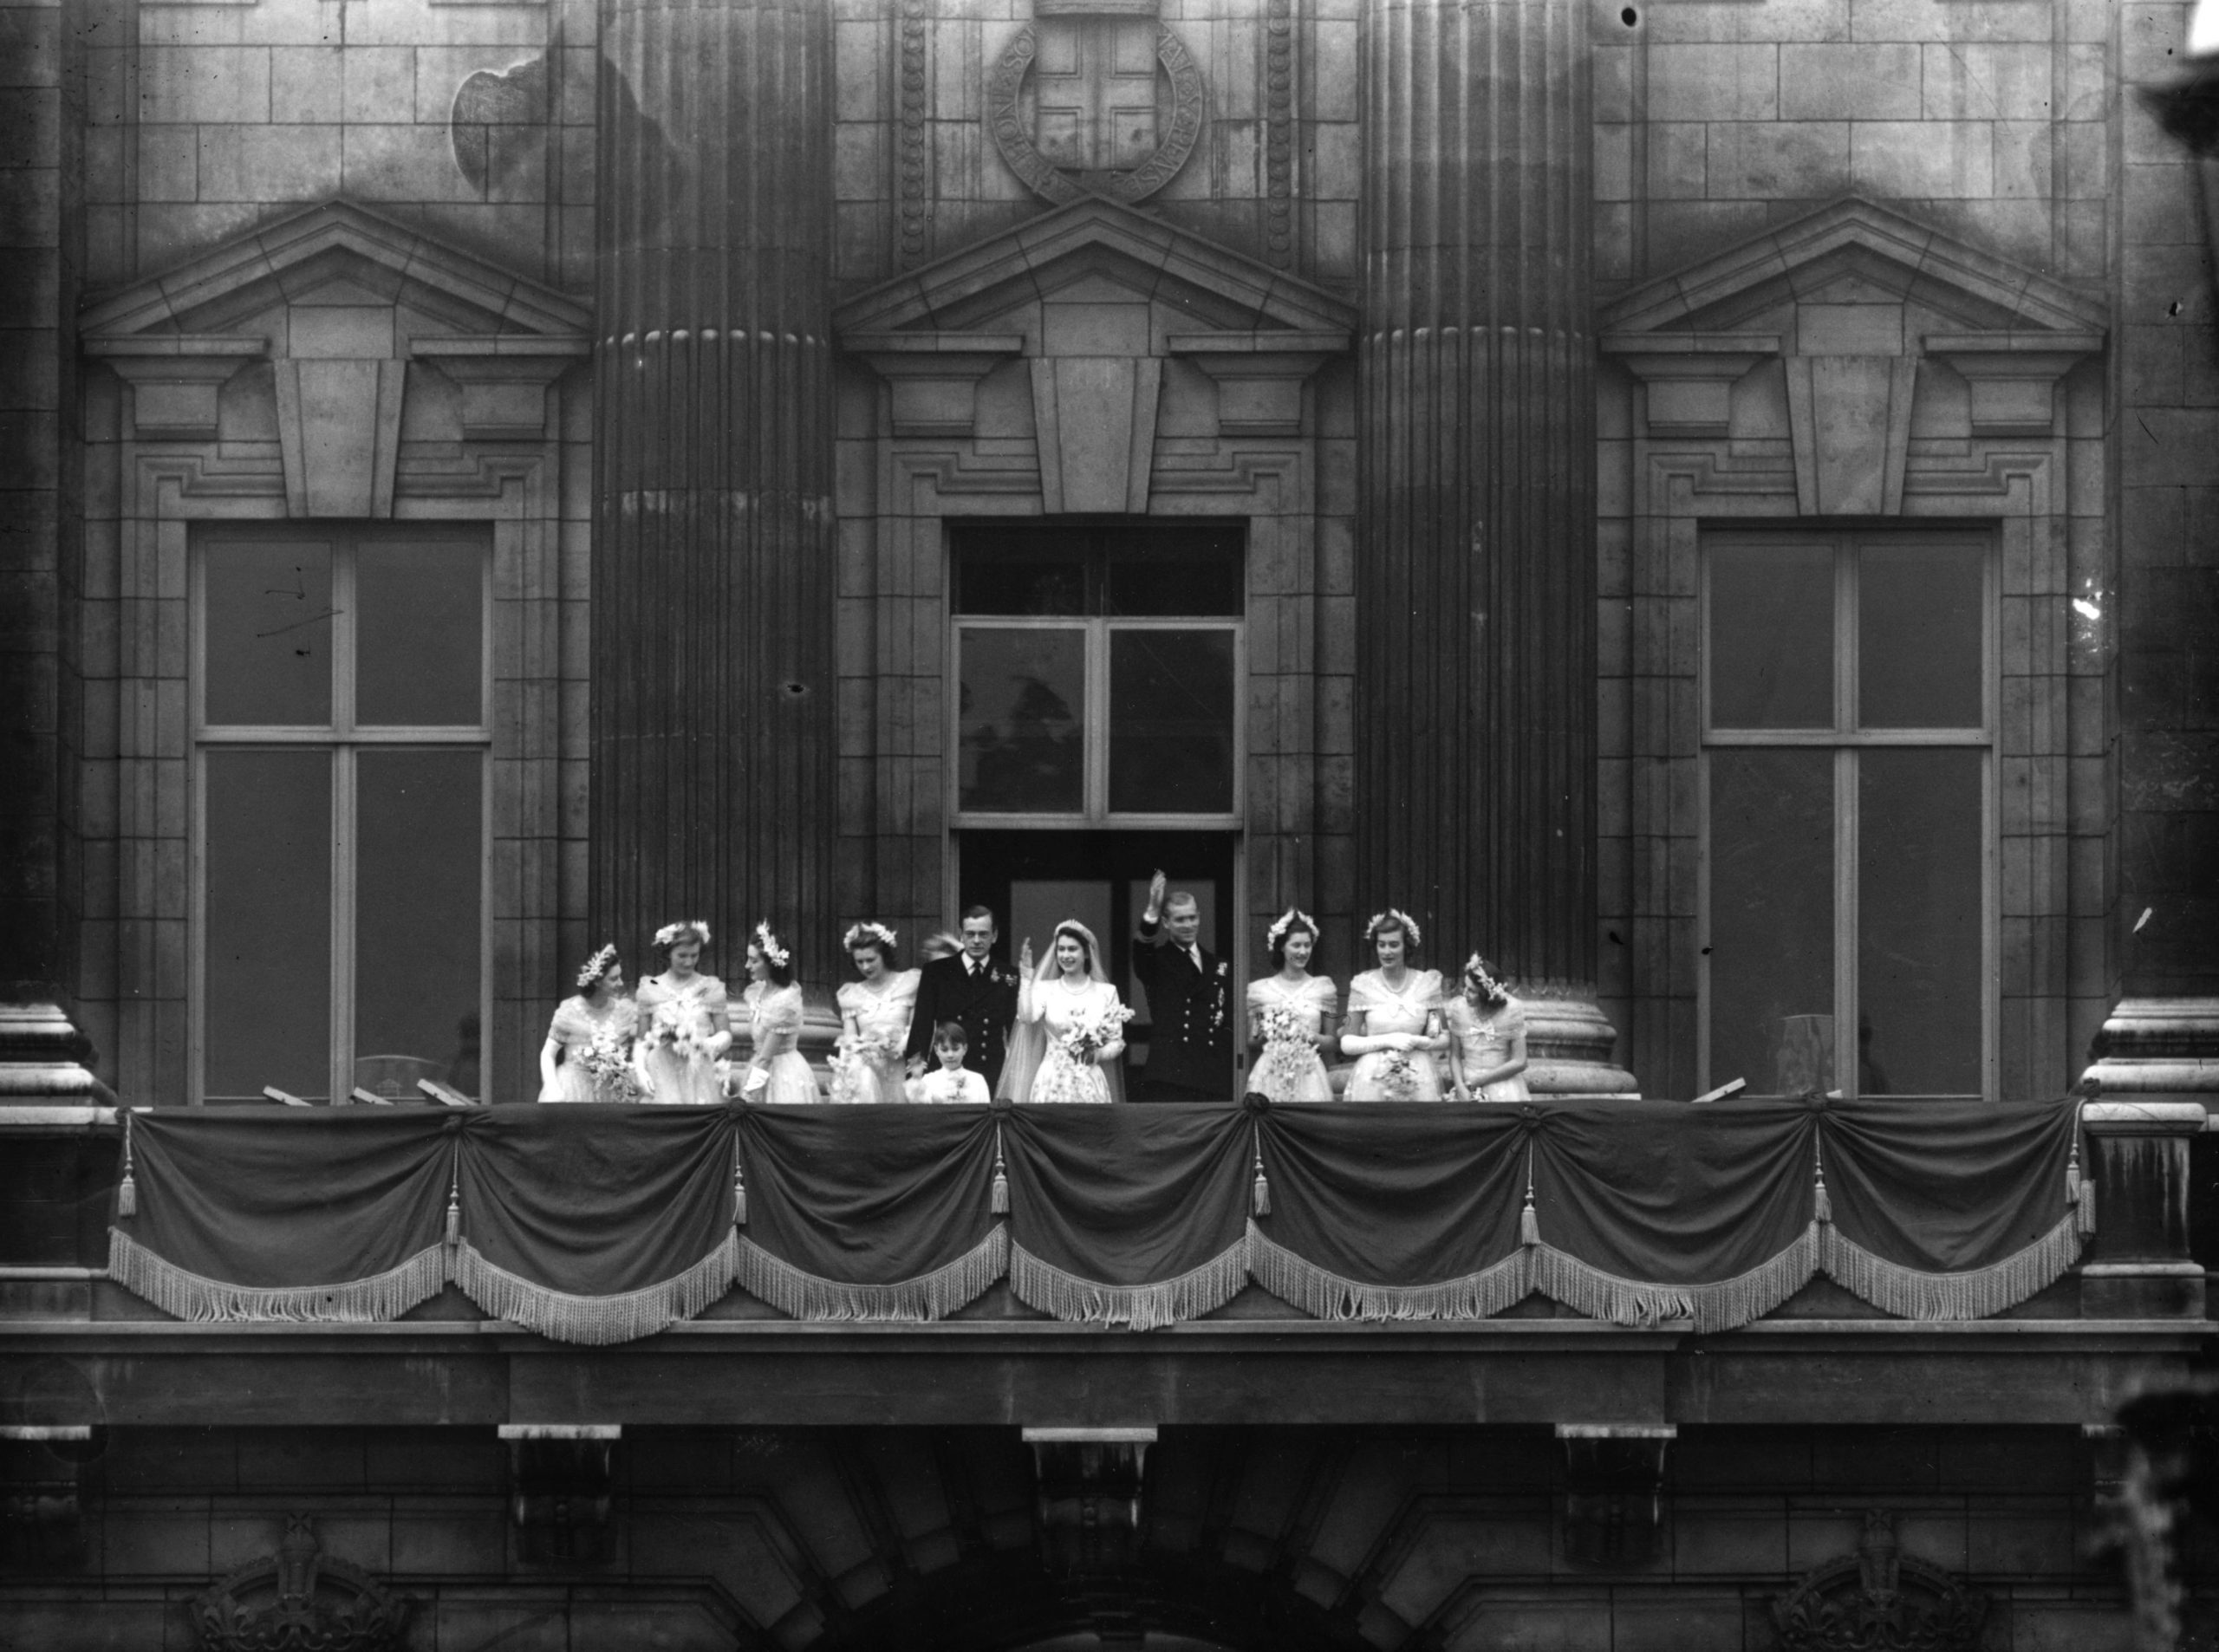 Balcony Wave on the wedding of Queen Elizabeth and Prince Philip